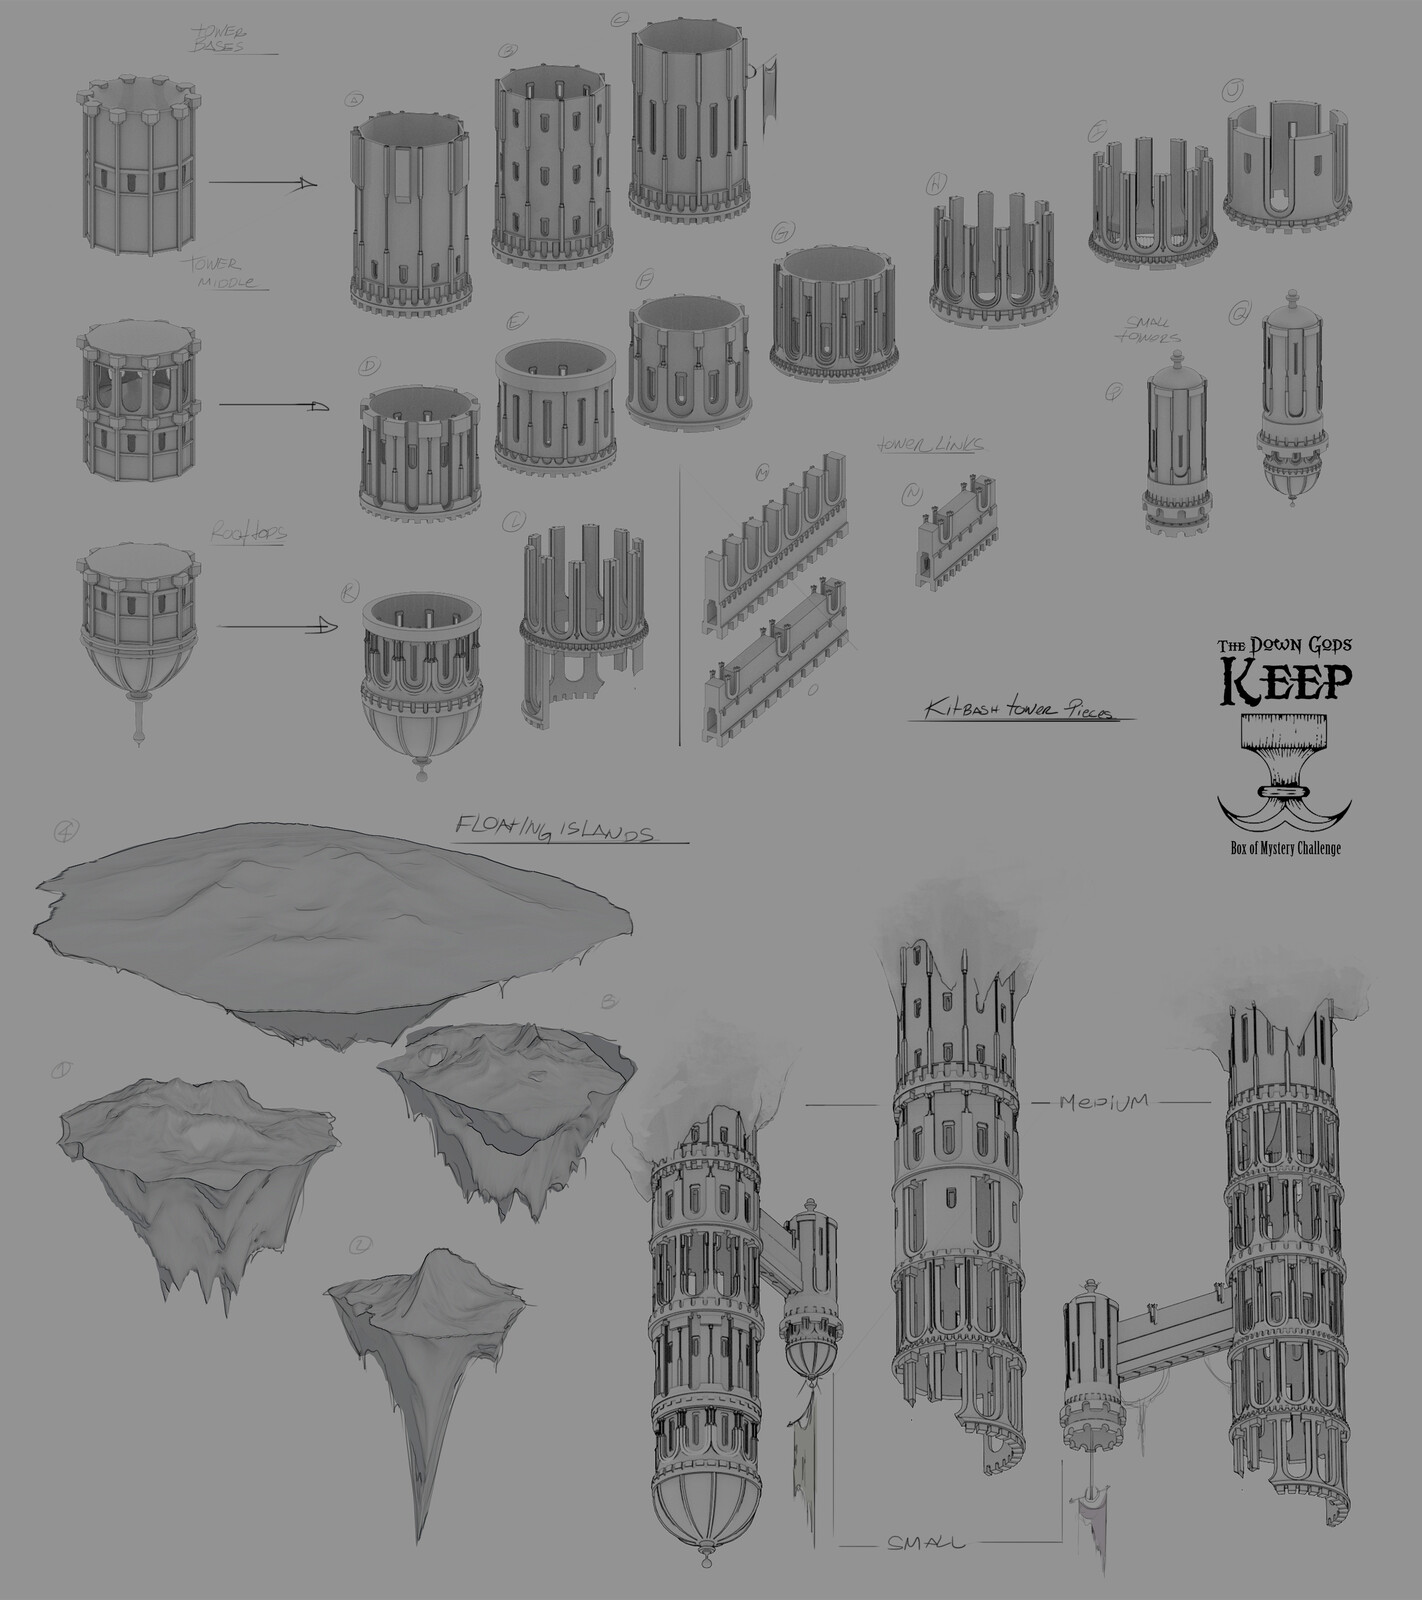 Kitbash 3d models created for the piece